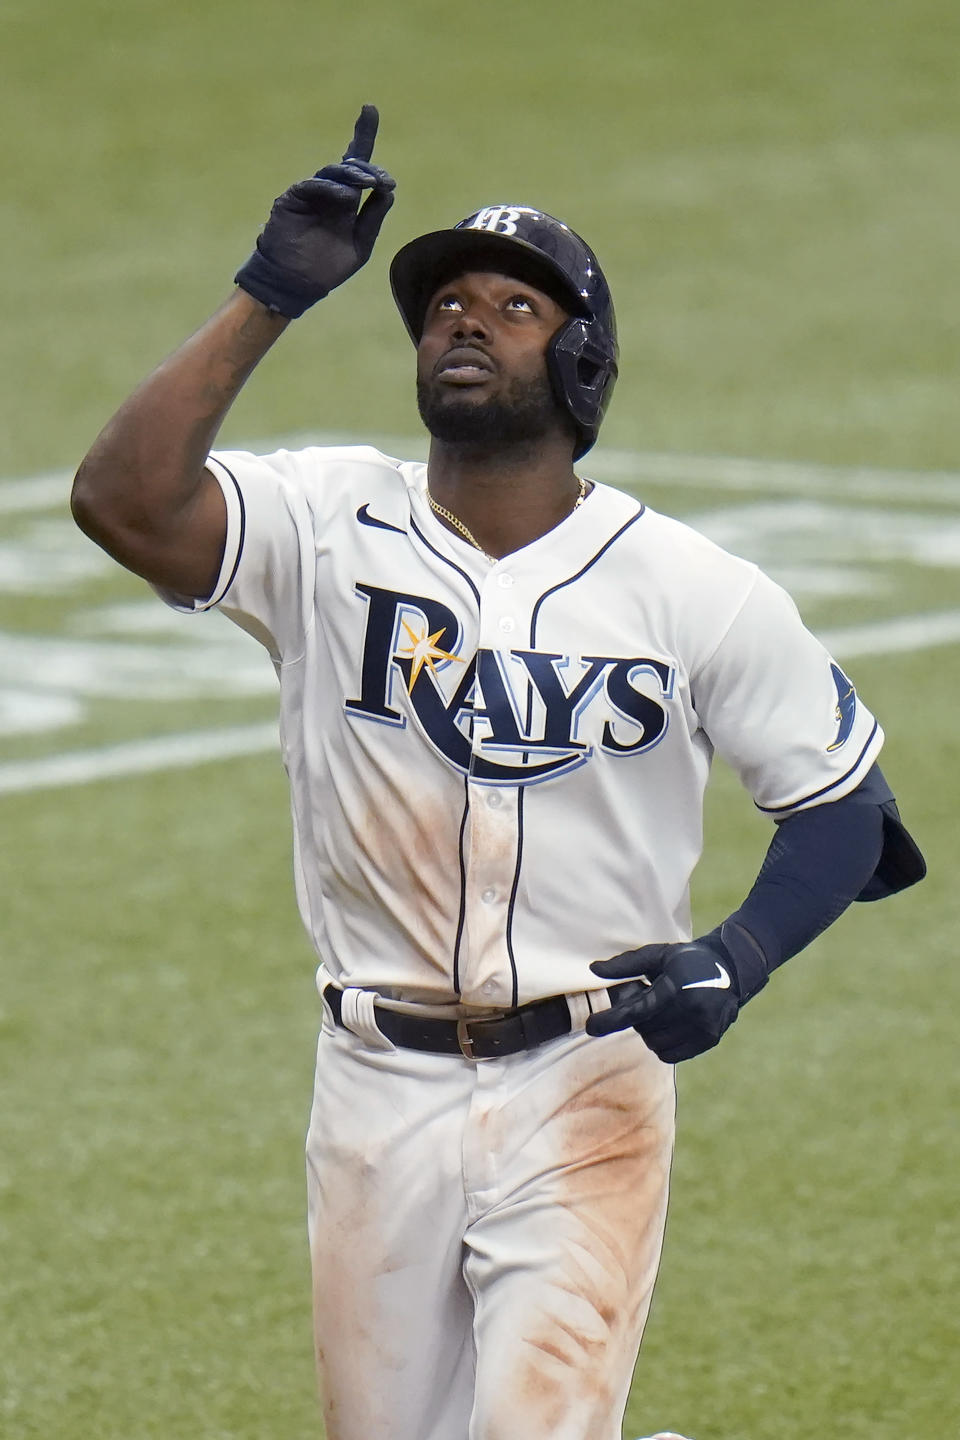 Tampa Bay Rays' Randy Arozarena reacts after his solo home run off New York Yankees starting pitcher Domingo German during the third inning of a baseball game Saturday, April 10, 2021, in St. Petersburg, Fla. (AP Photo/Chris O'Meara)